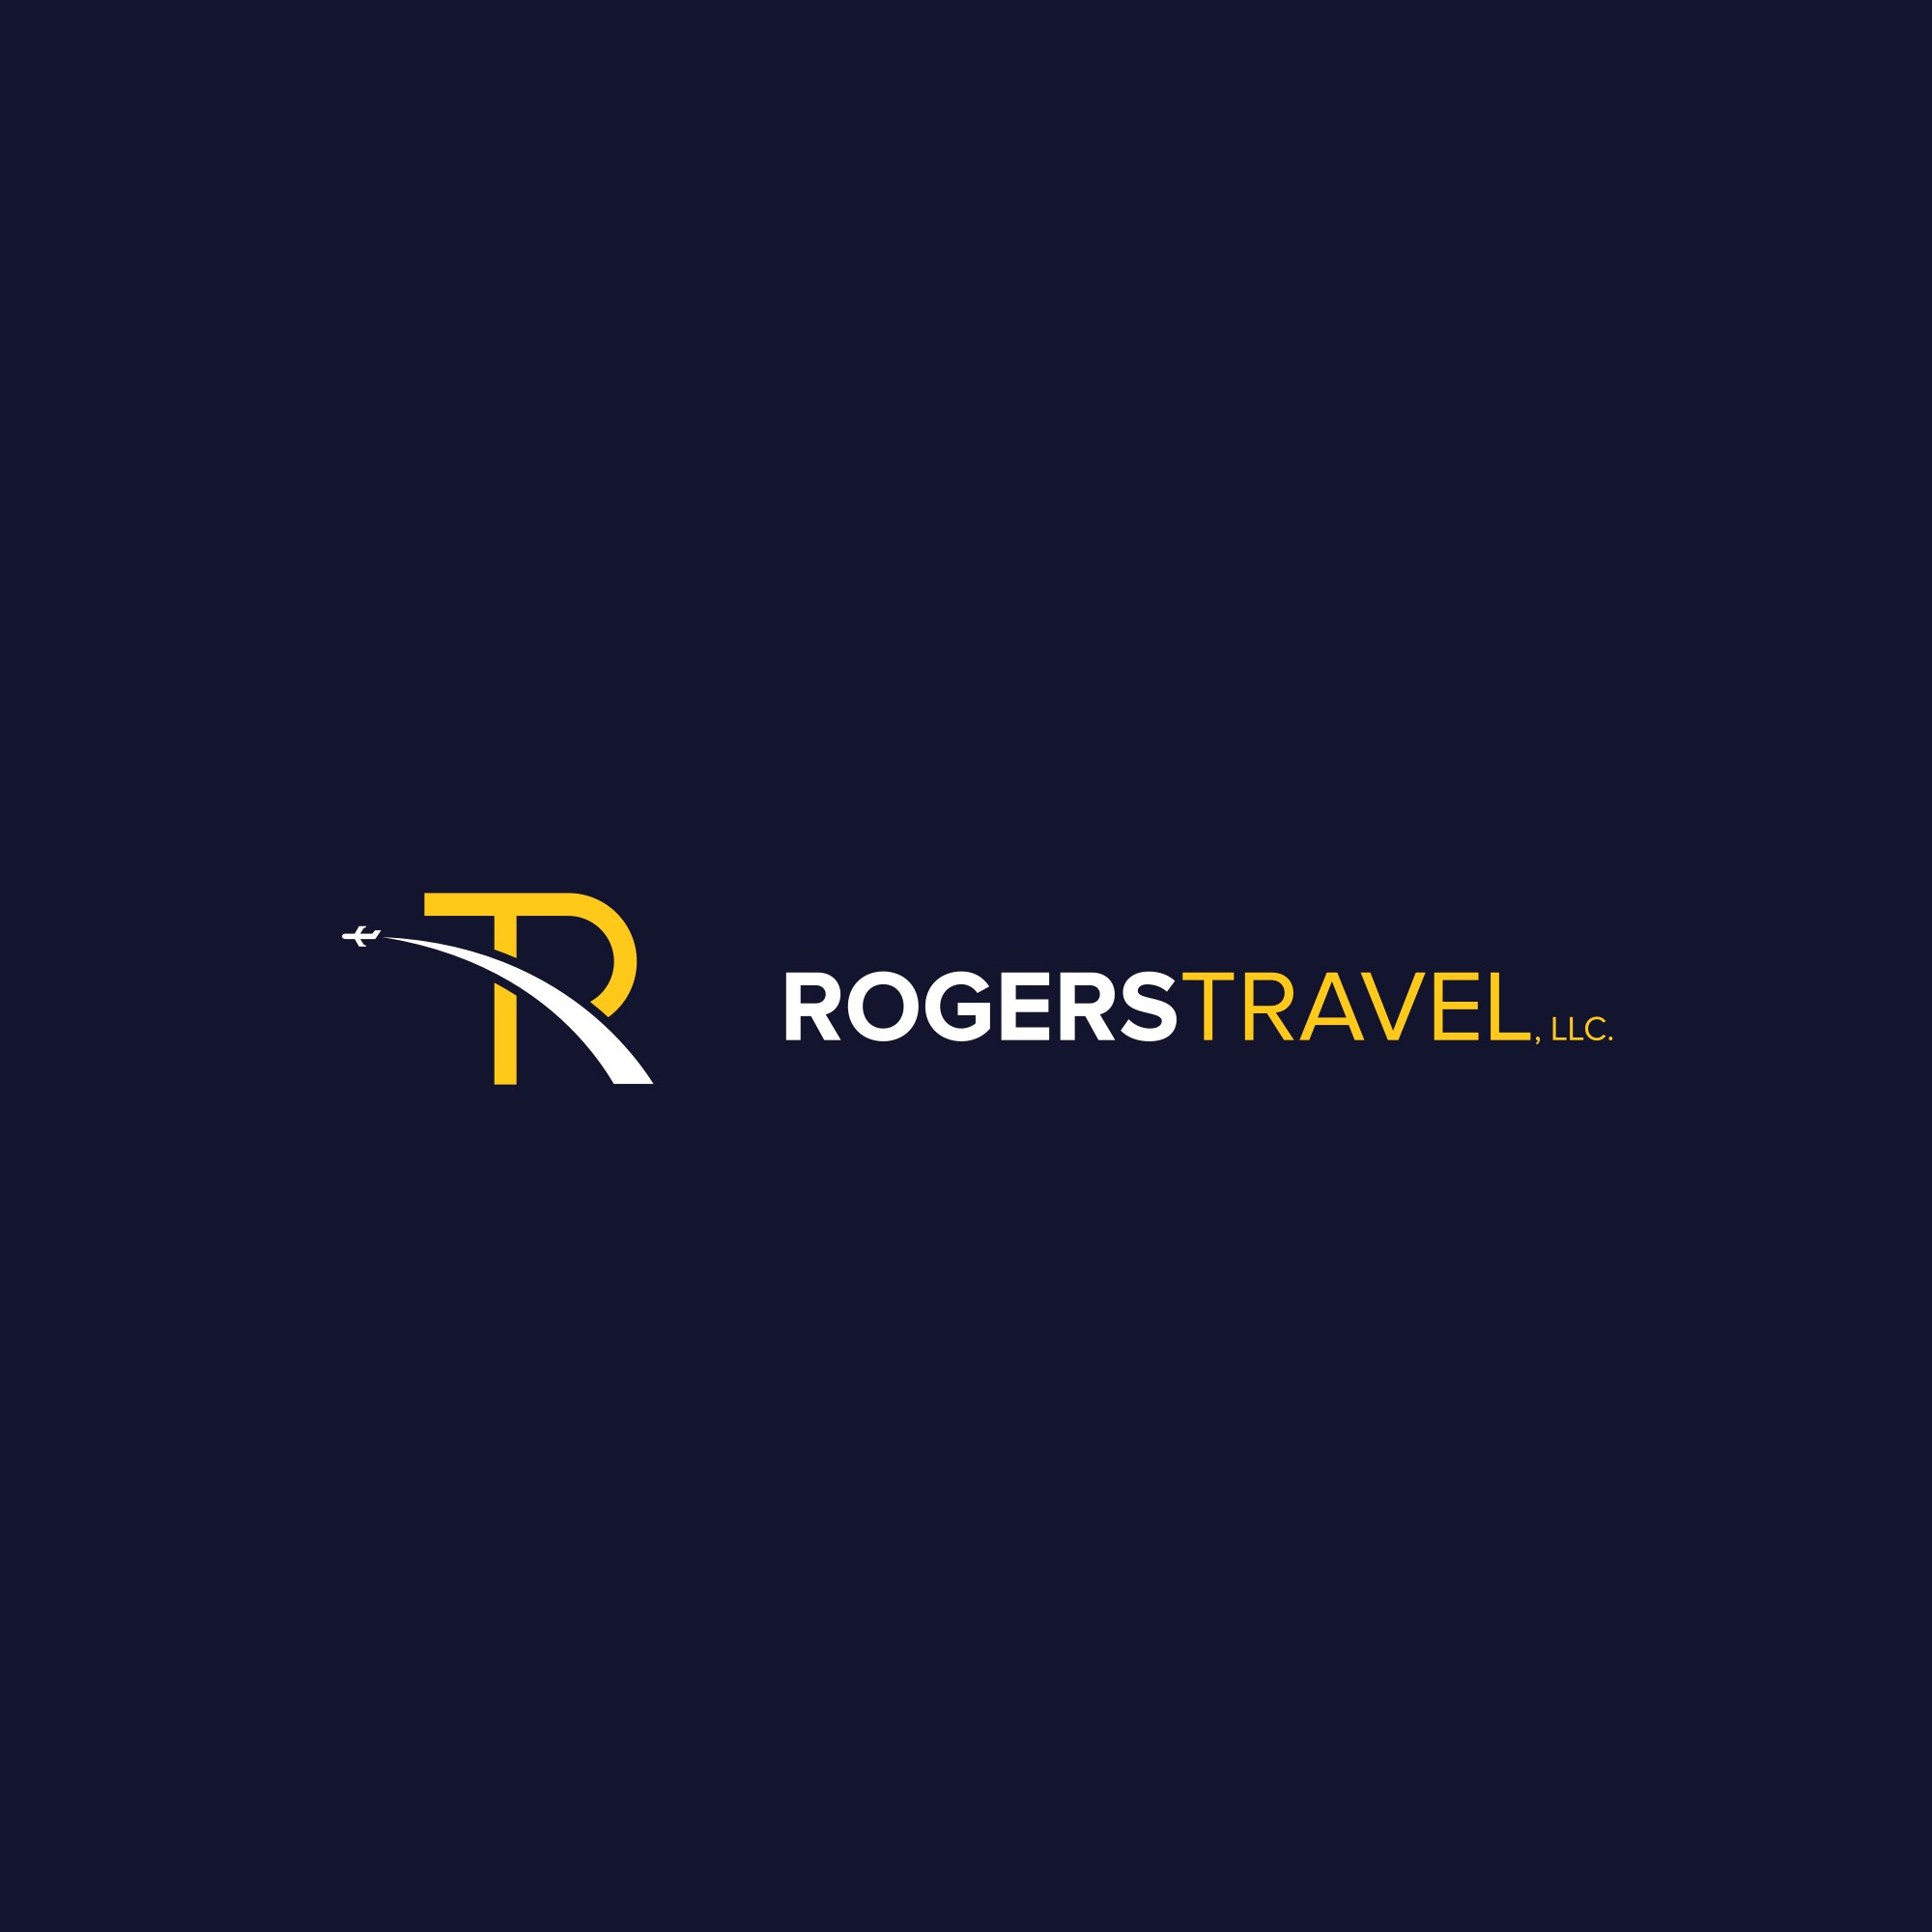 We need a powerful distinctive logo for our 50 year old travel agency